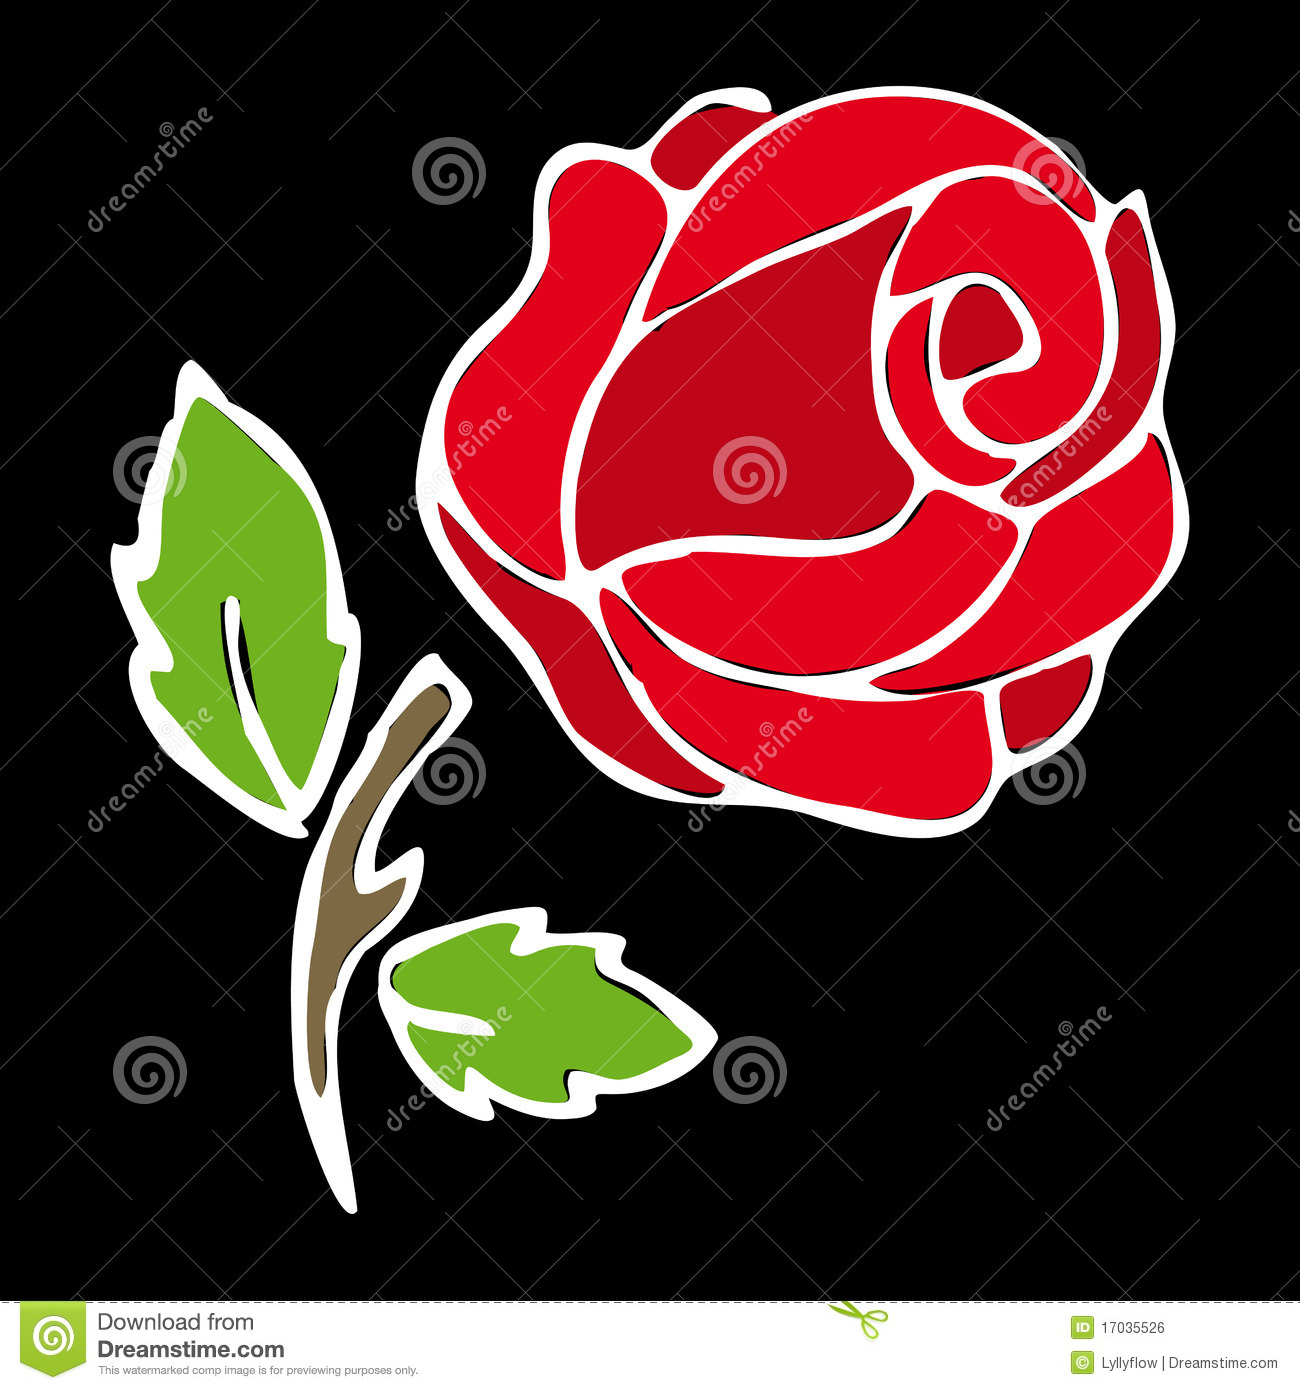 Rose Stencil Stock Illustrations – 1,251 Rose Stencil Stock ...